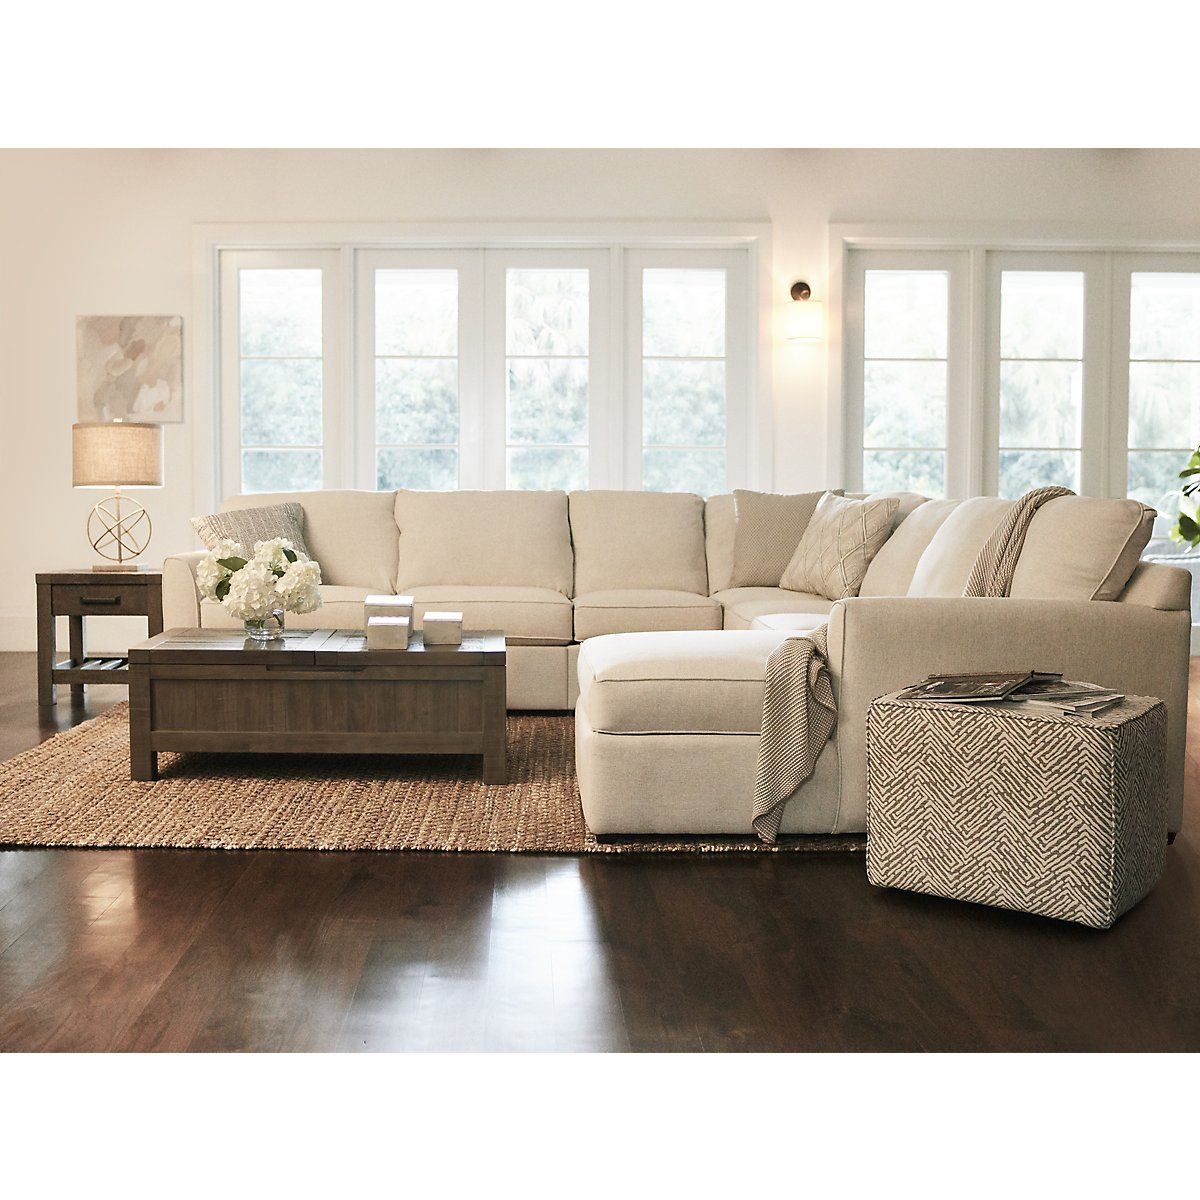 Pleasant City Furniture Asheville Light Taupe Fabric Large Right Dailytribune Chair Design For Home Dailytribuneorg